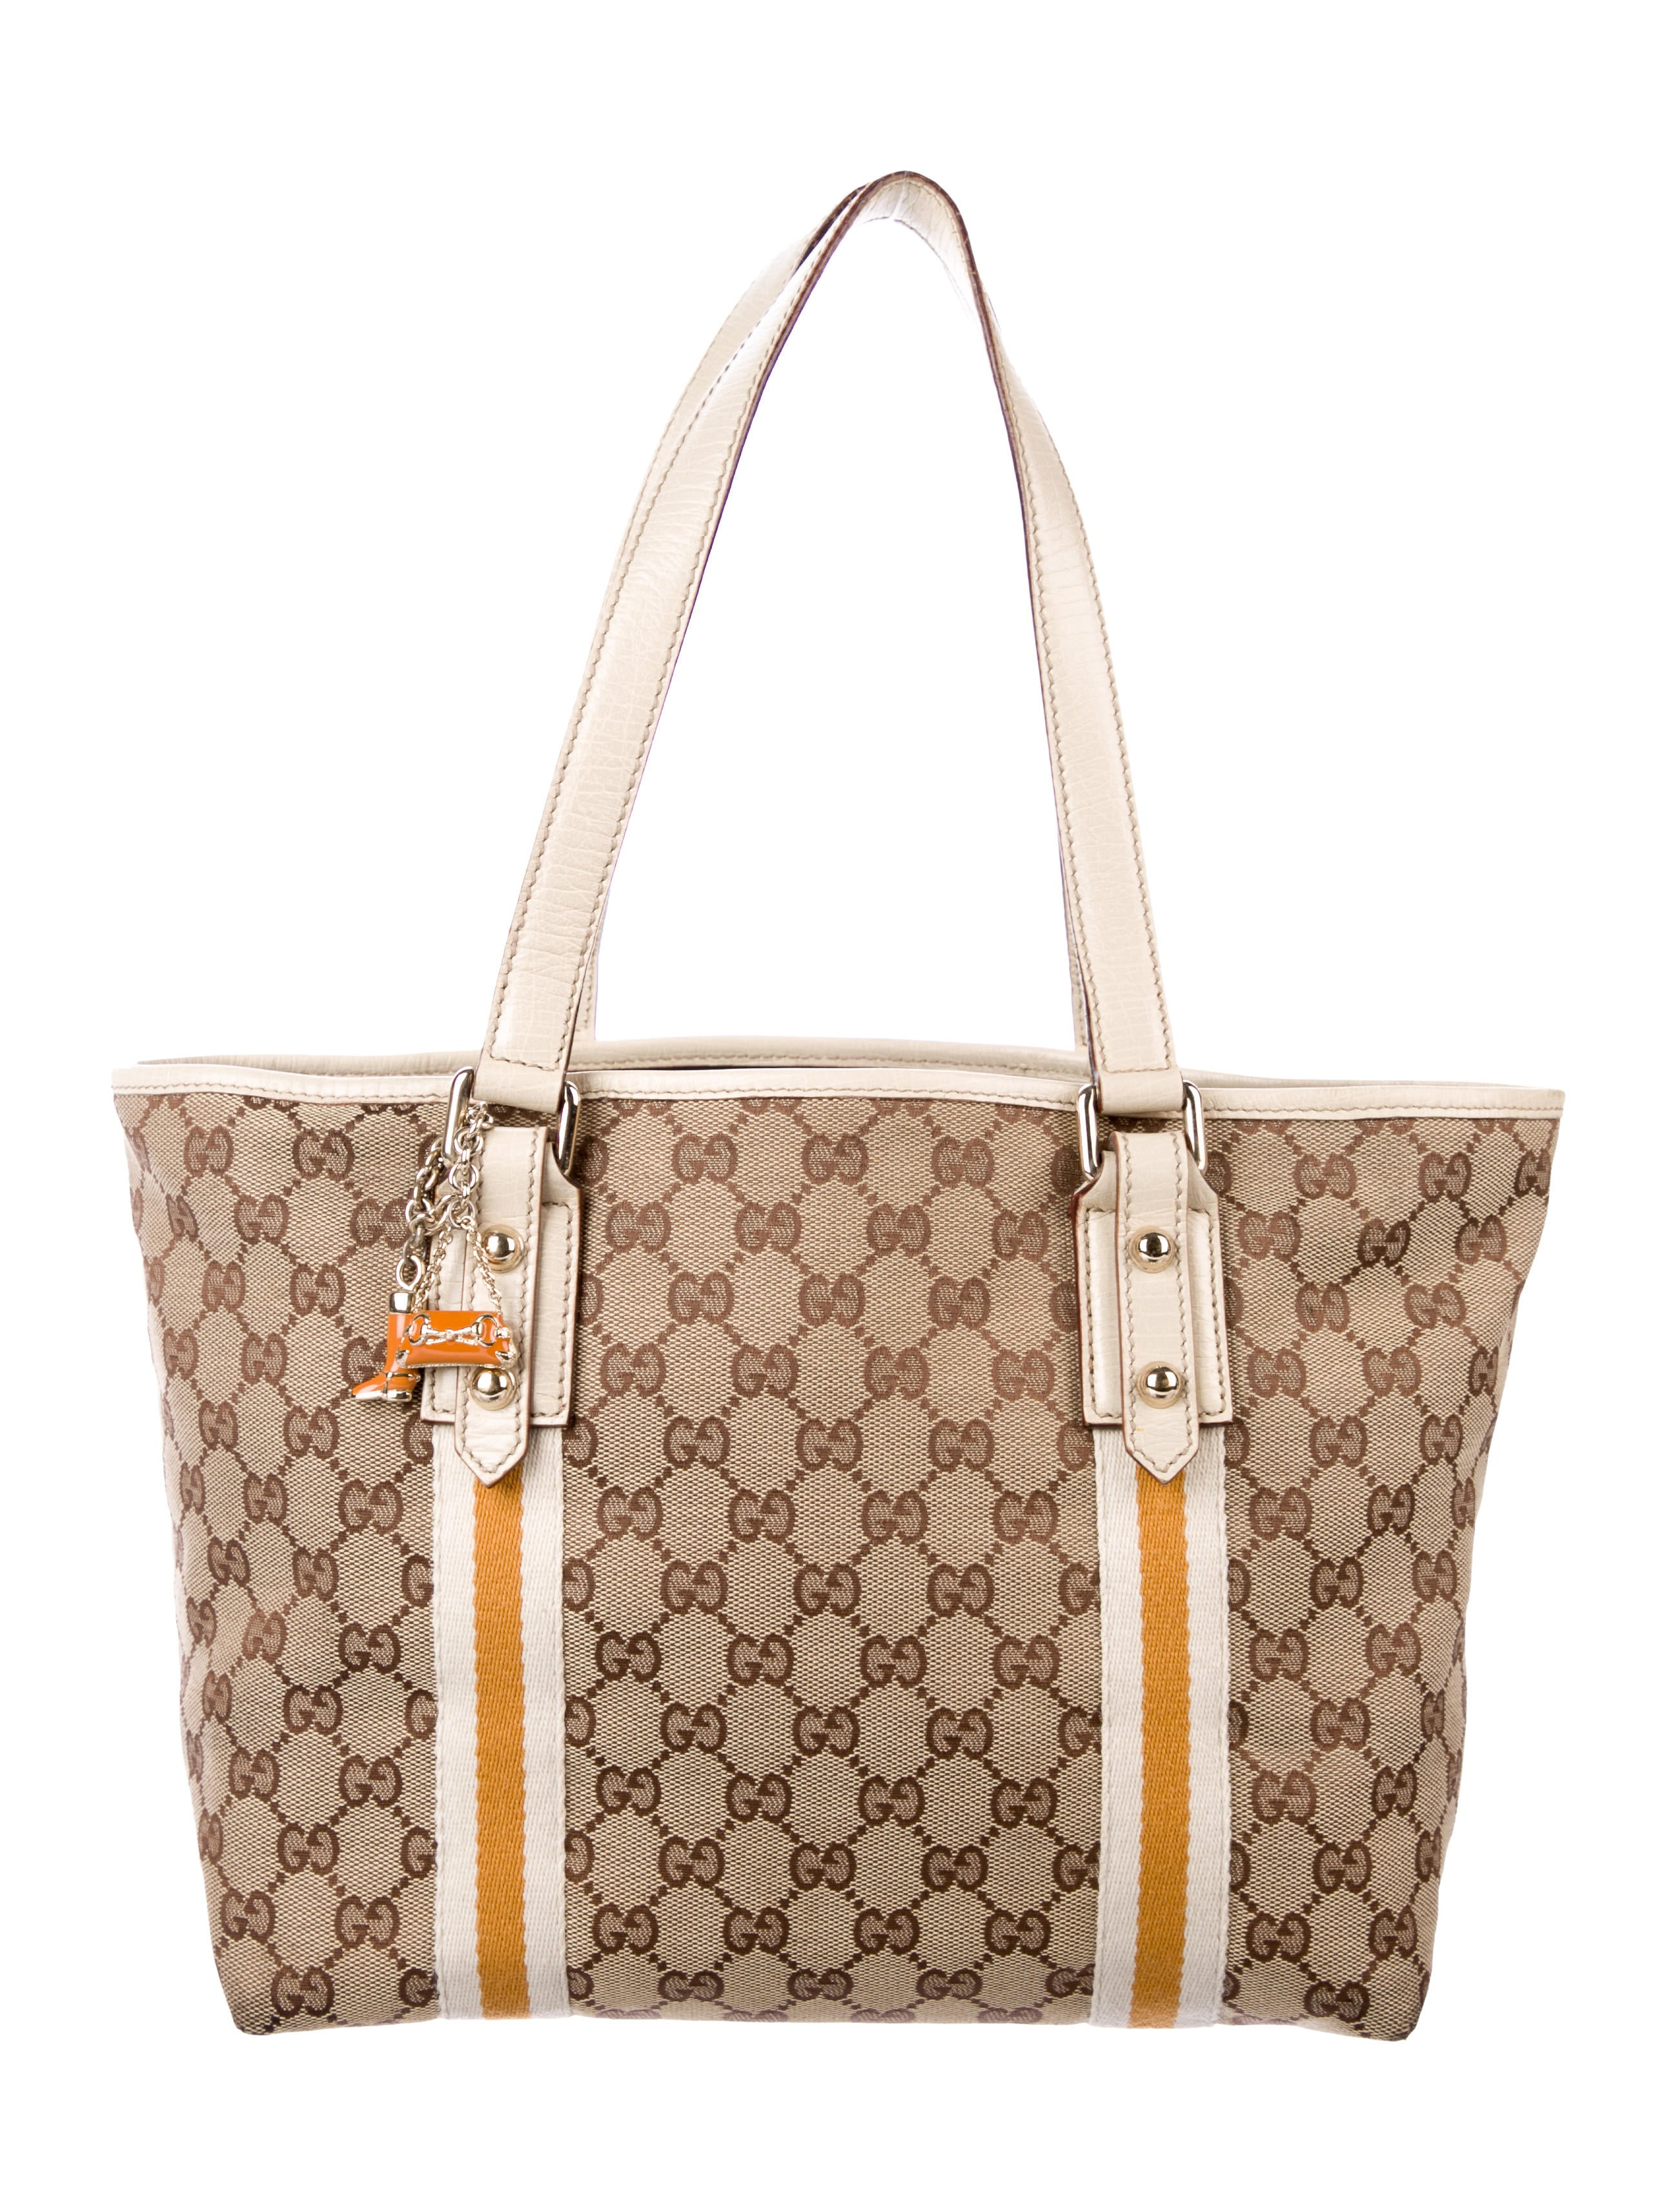 f4140c111d Gucci Totes | The RealReal